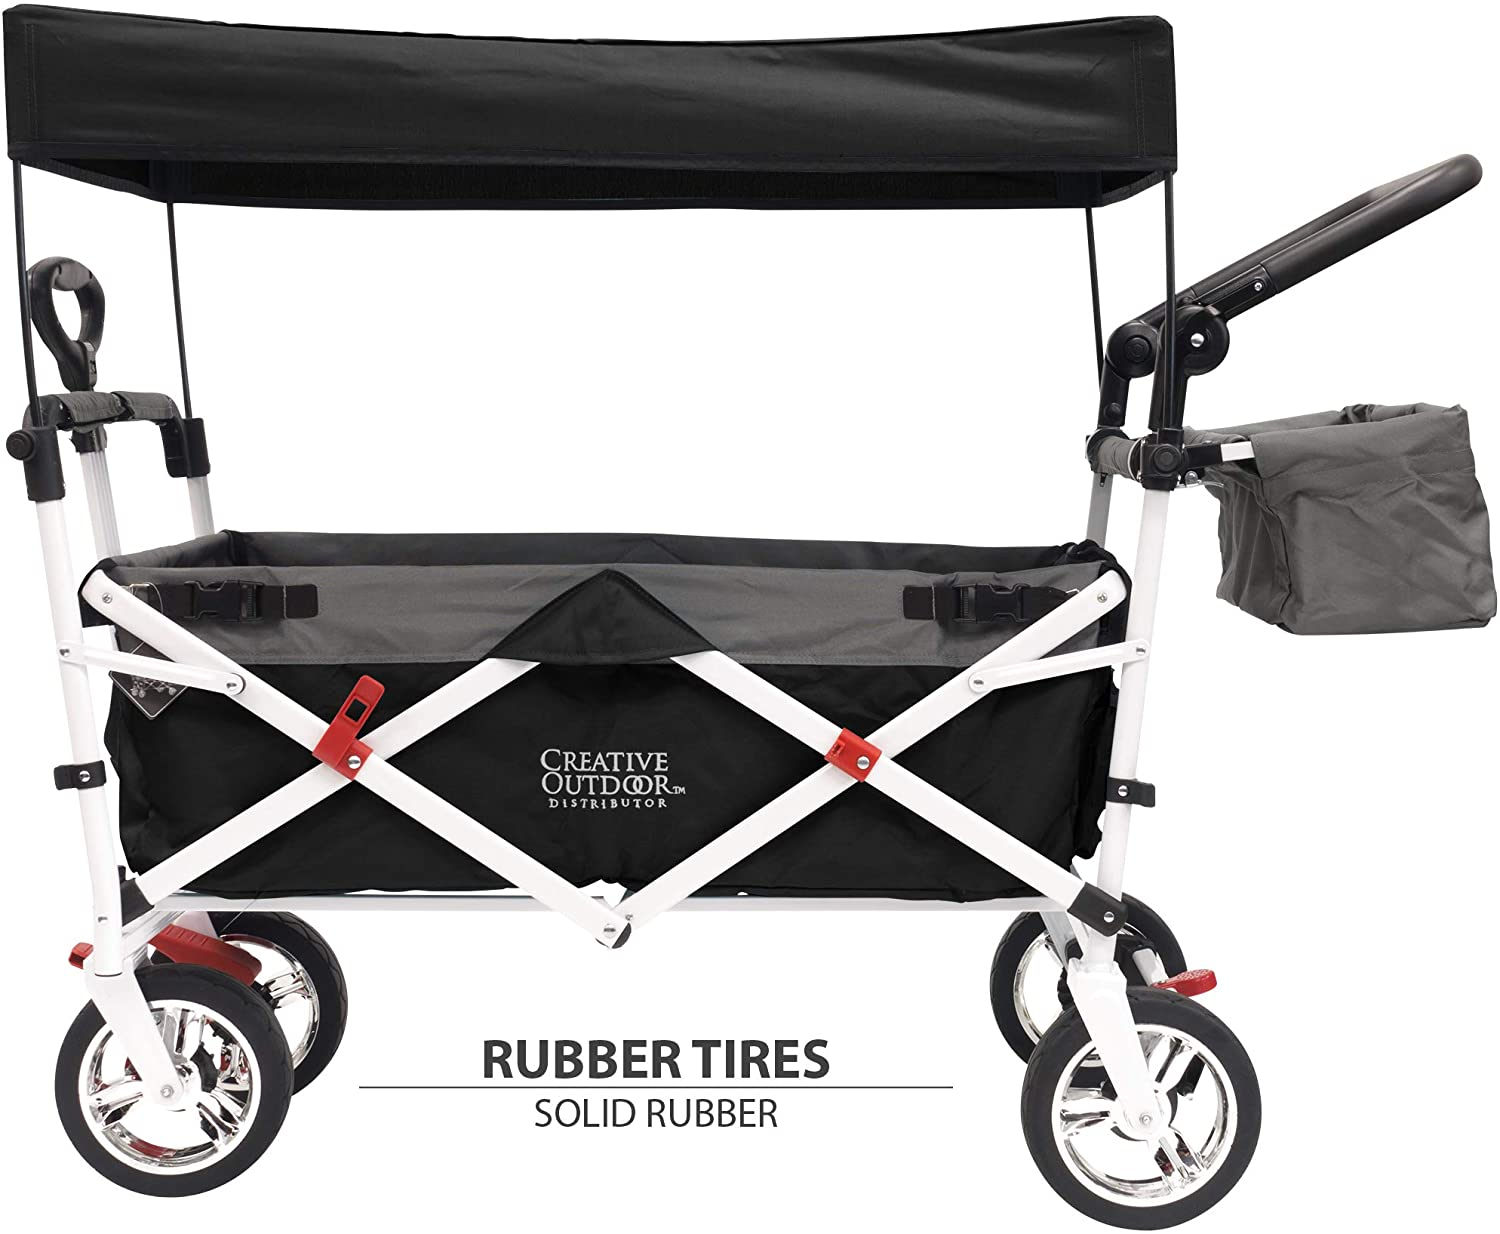 Creative Outdoor Distributor Push-Pull Collapsible Folding Wagon